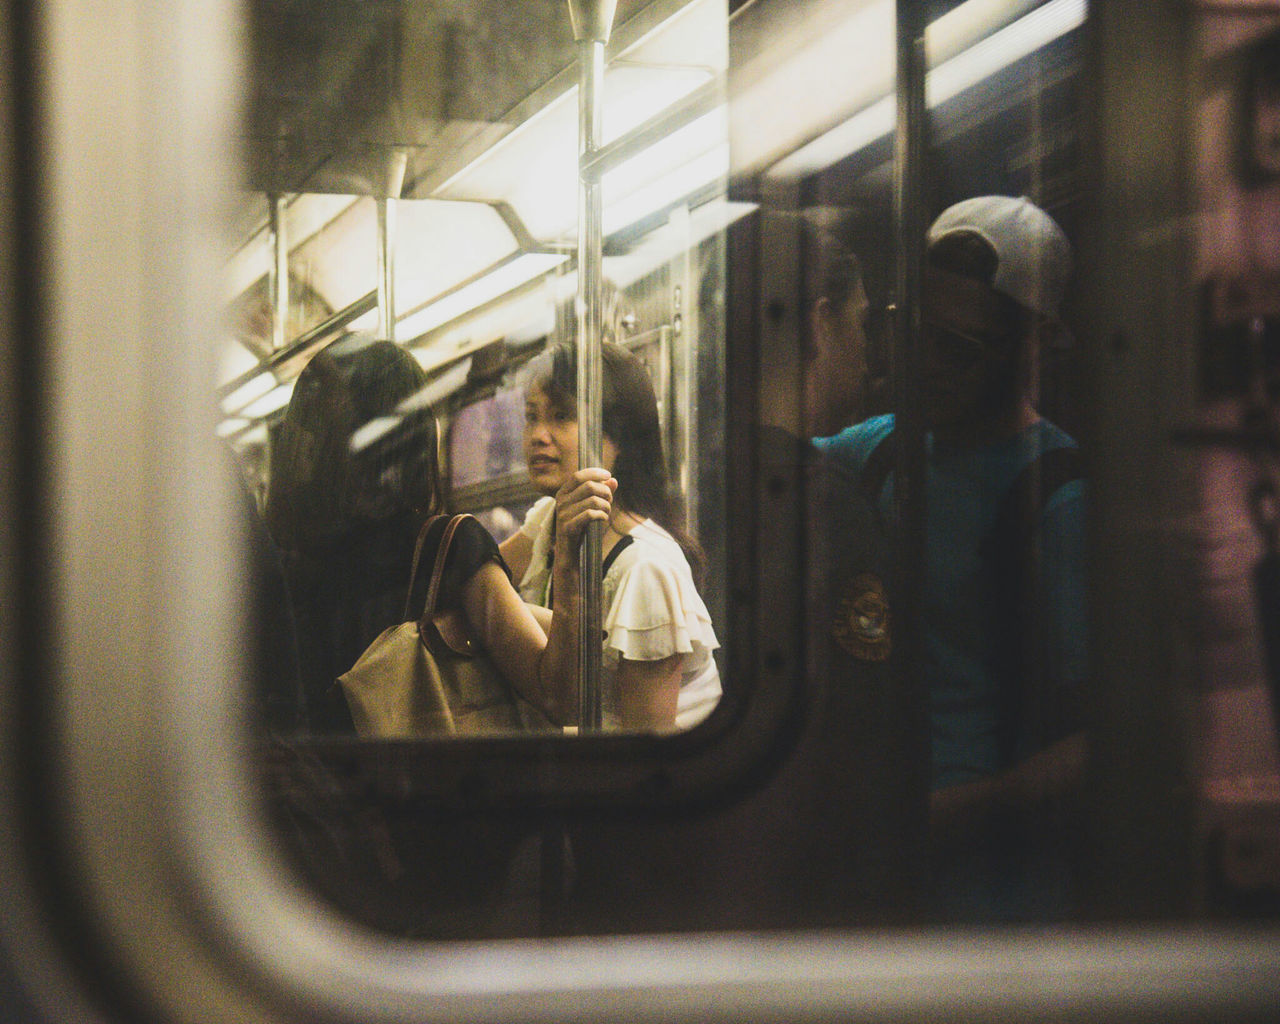 indoors, window, public transportation, men, real people, day, people